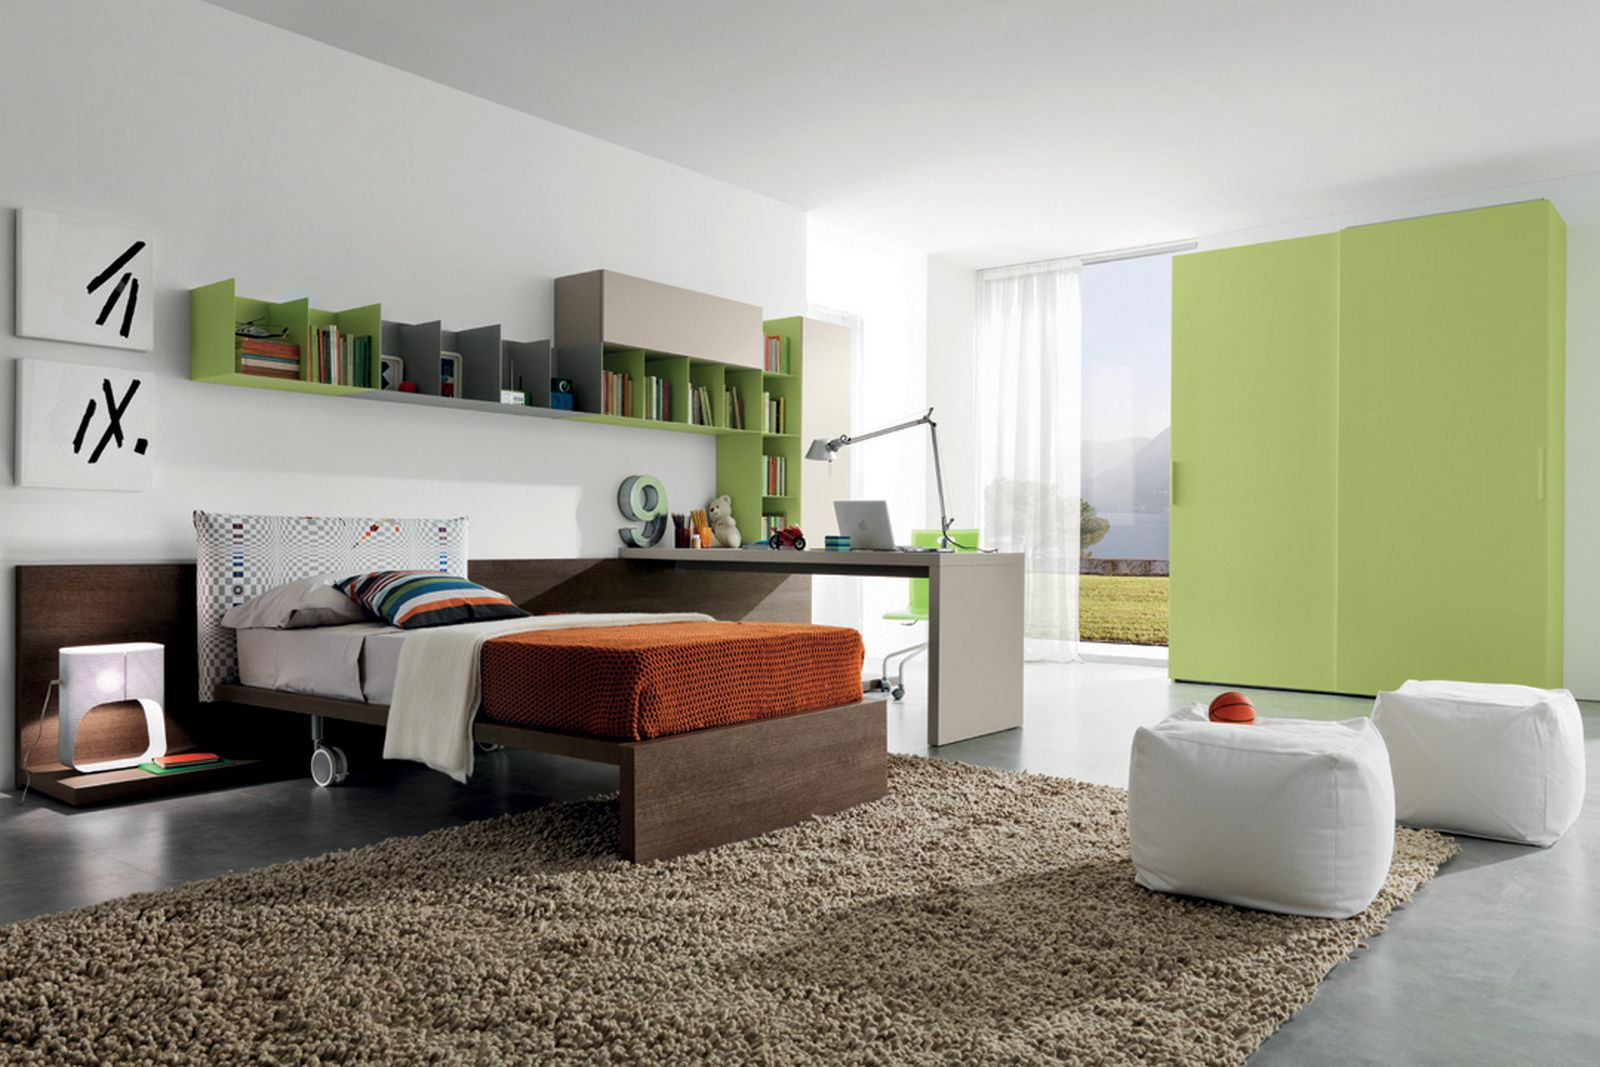 modern-bedroom-renovation-ideas.jpg